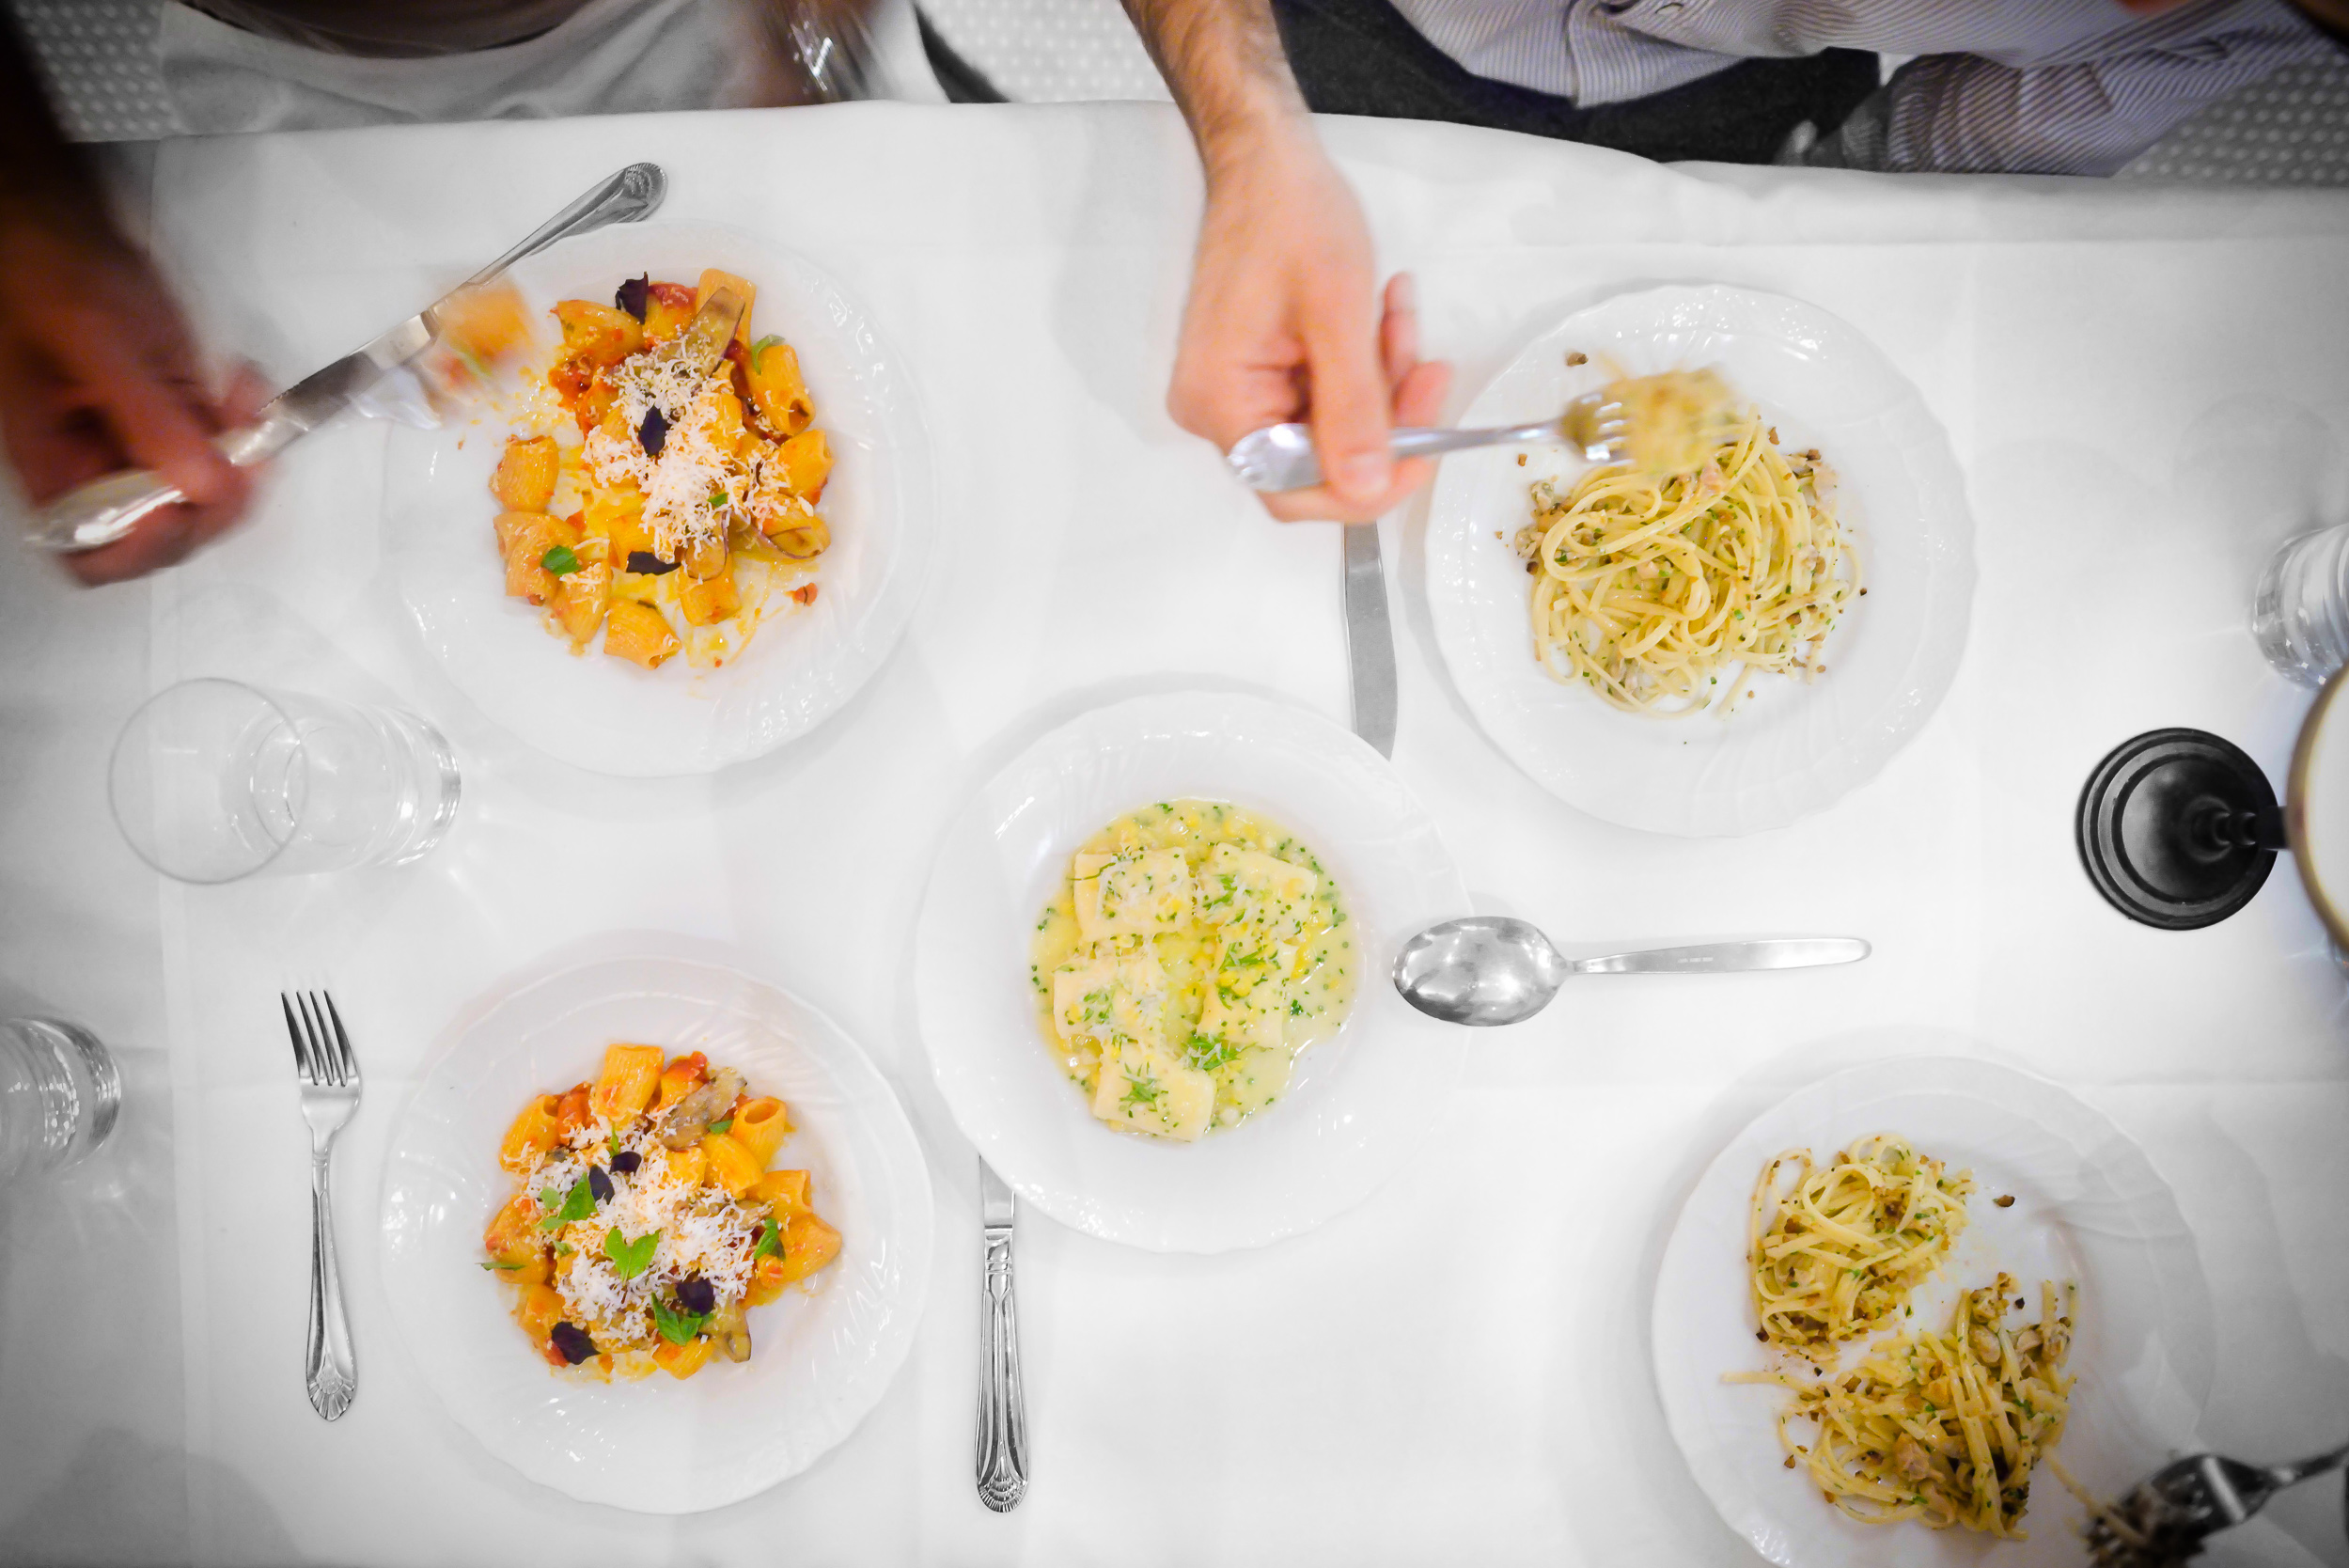 9th, 10th, and 11th Courses: Linguine with clams, burnt pizza do